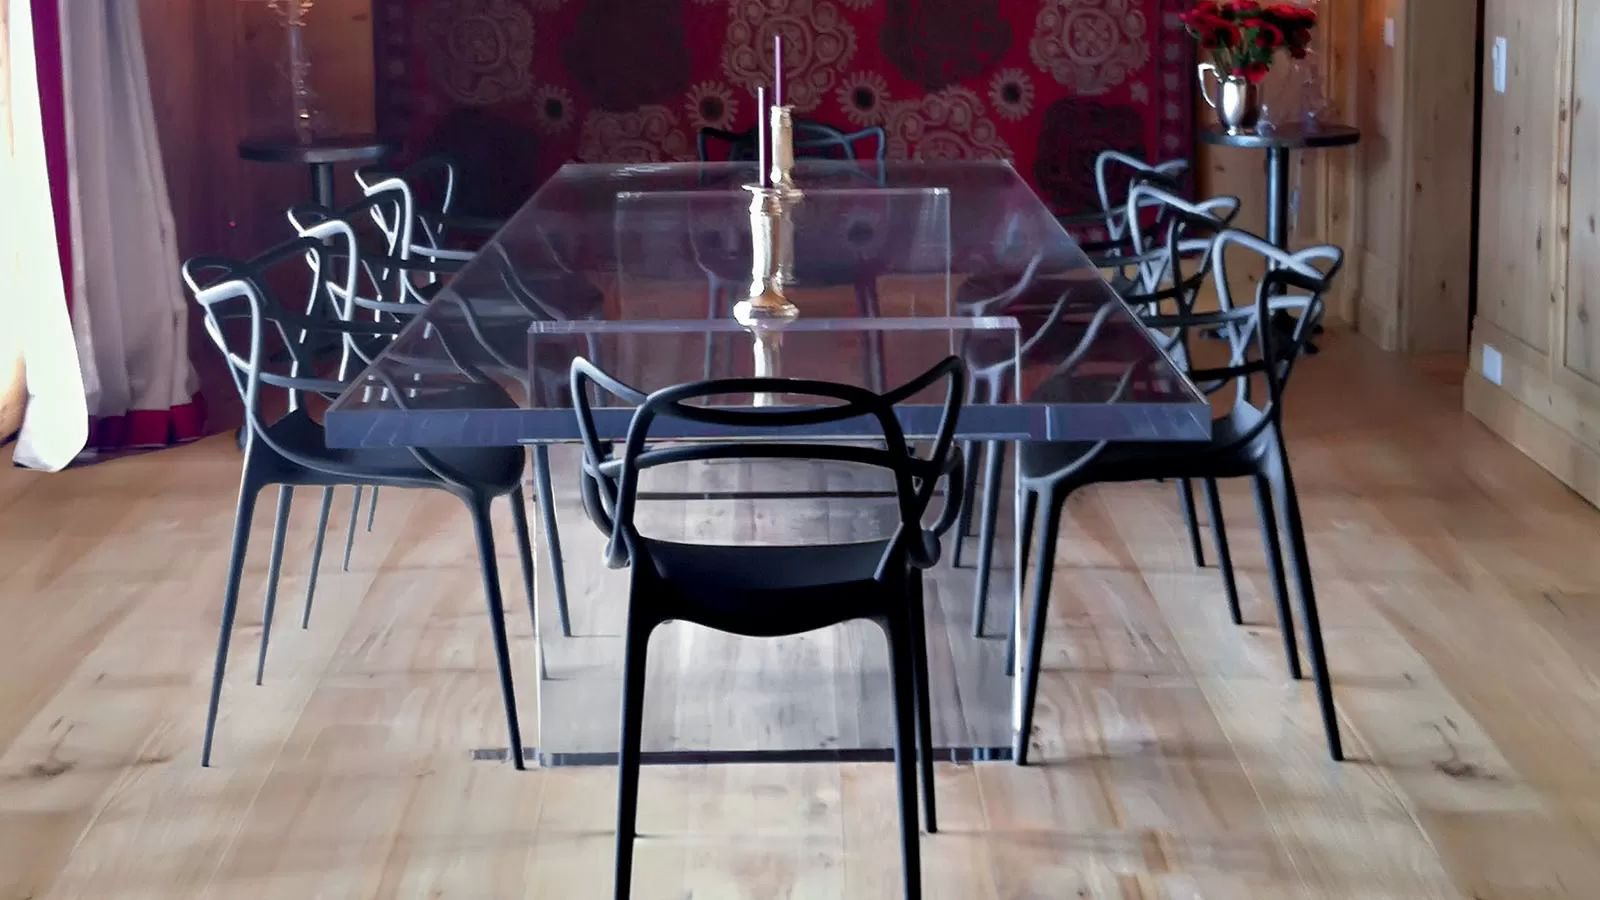 Masters chair from Kartell, designed by Philippe Starck